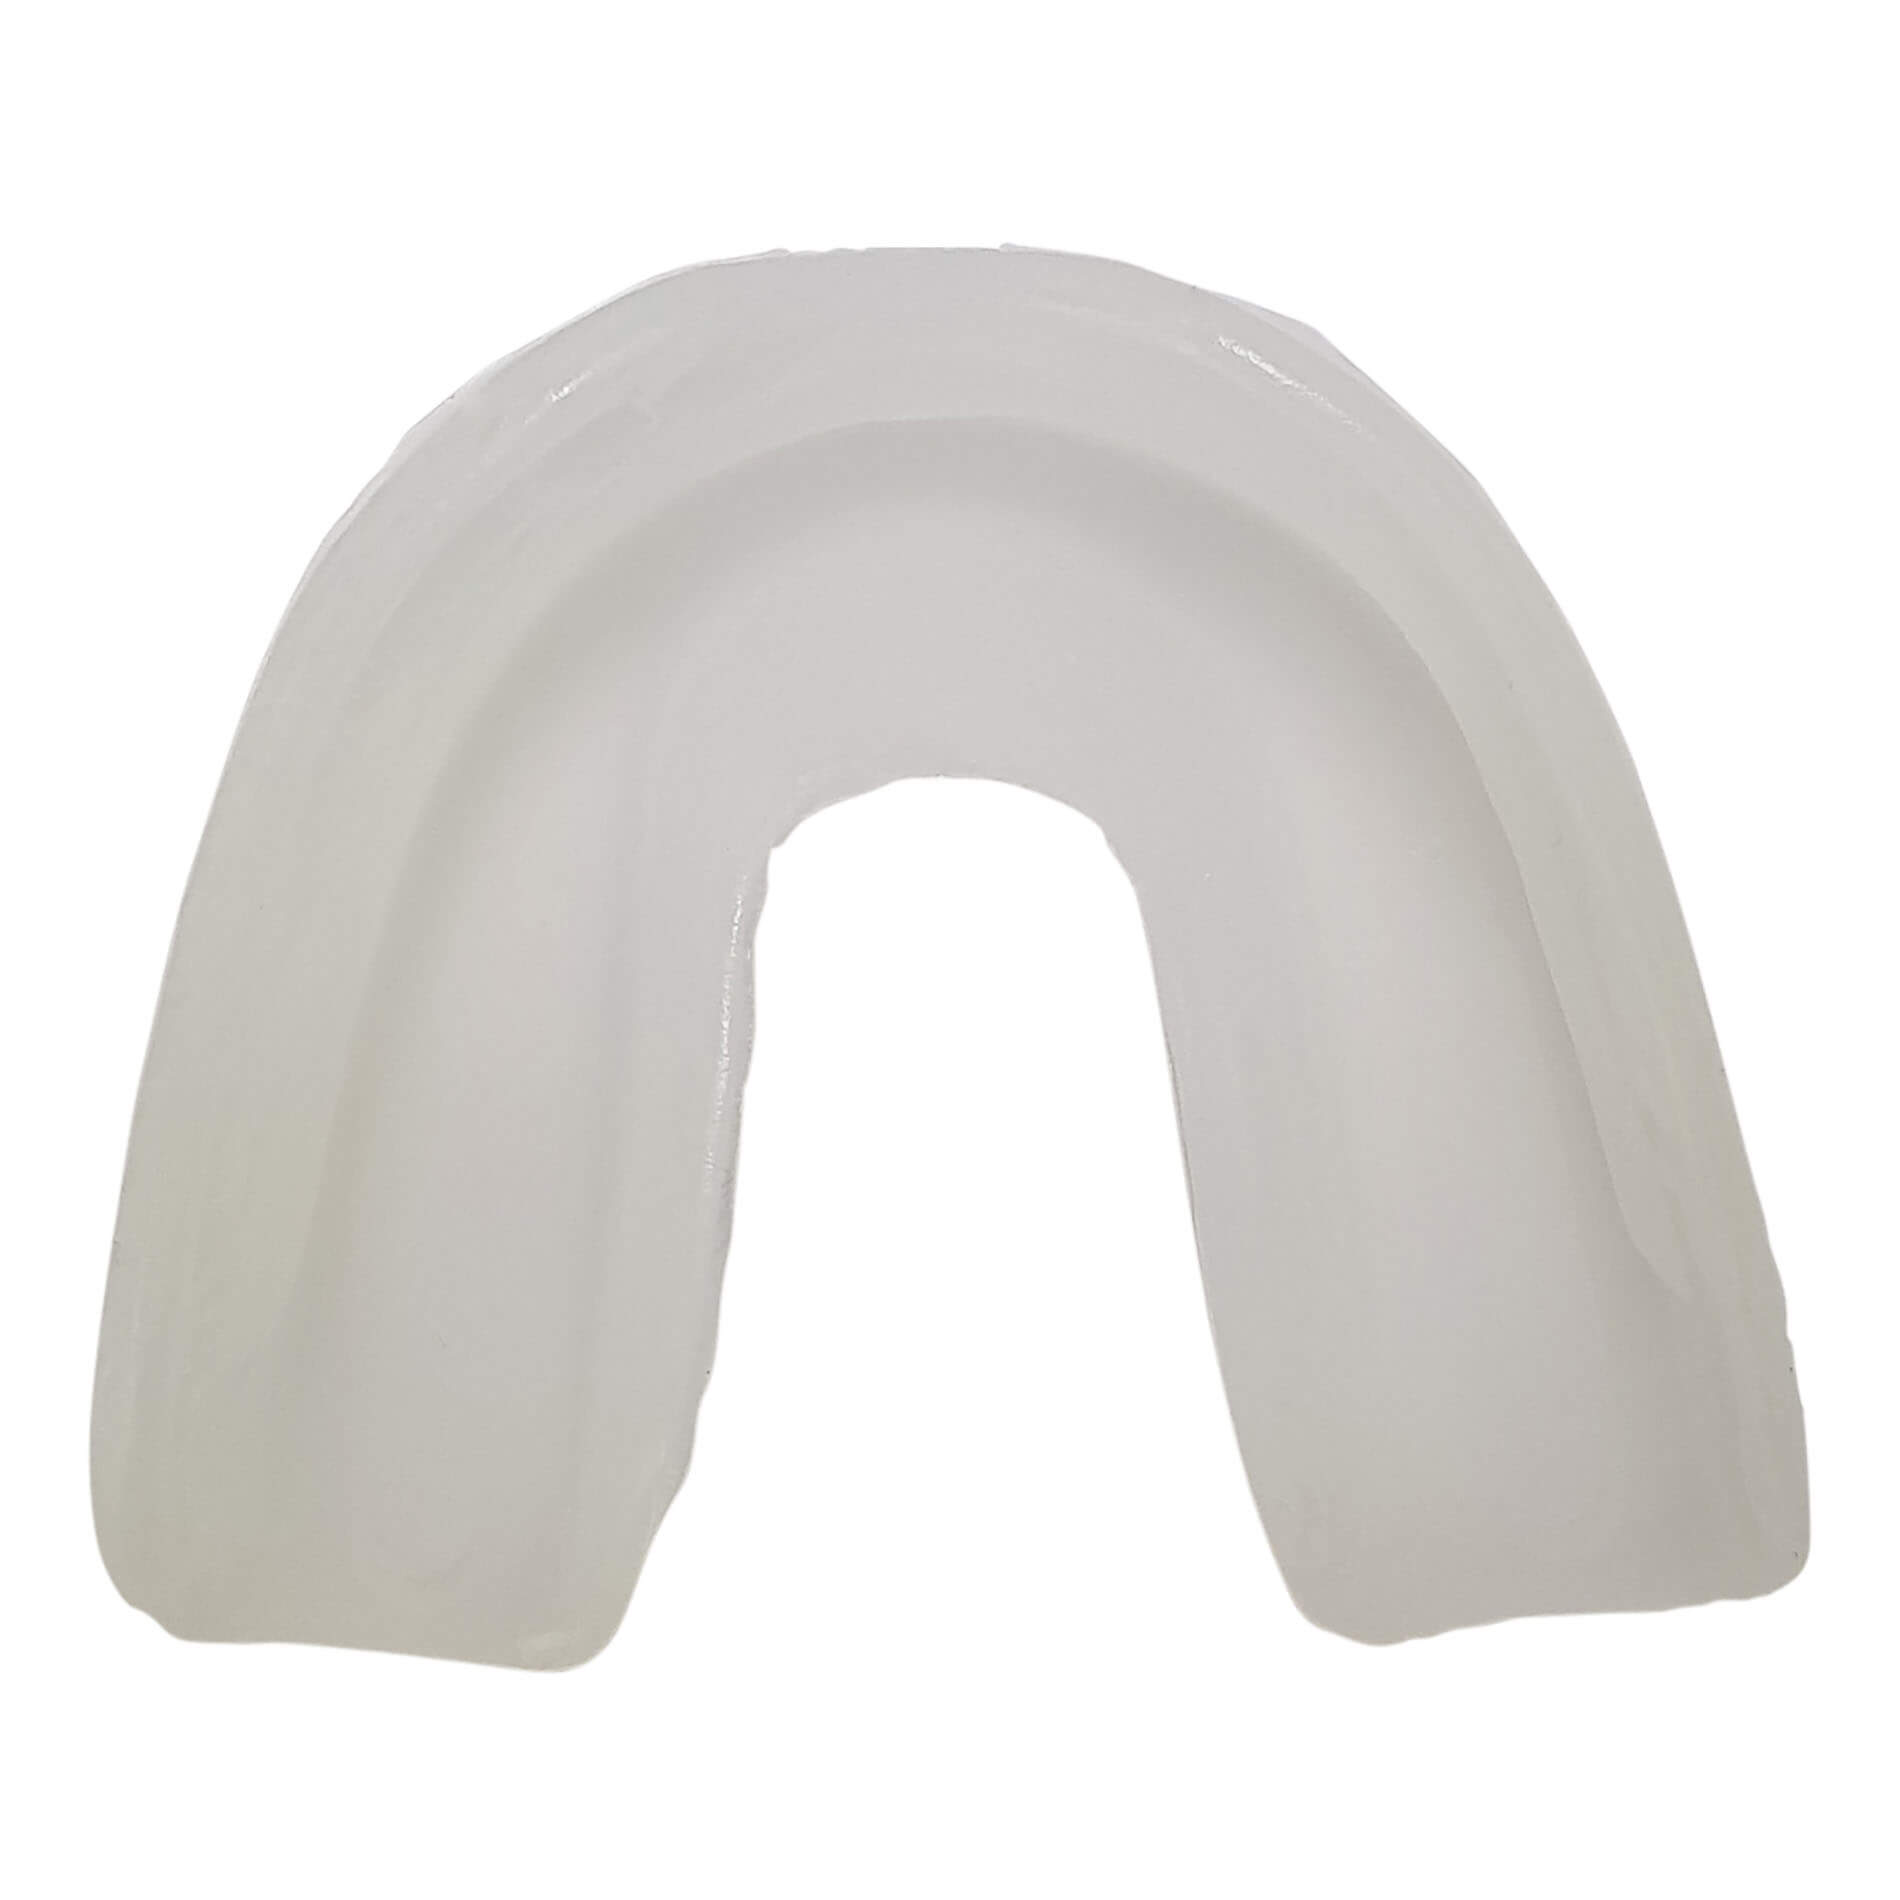 Mouthguard  (no blister) - Transparant